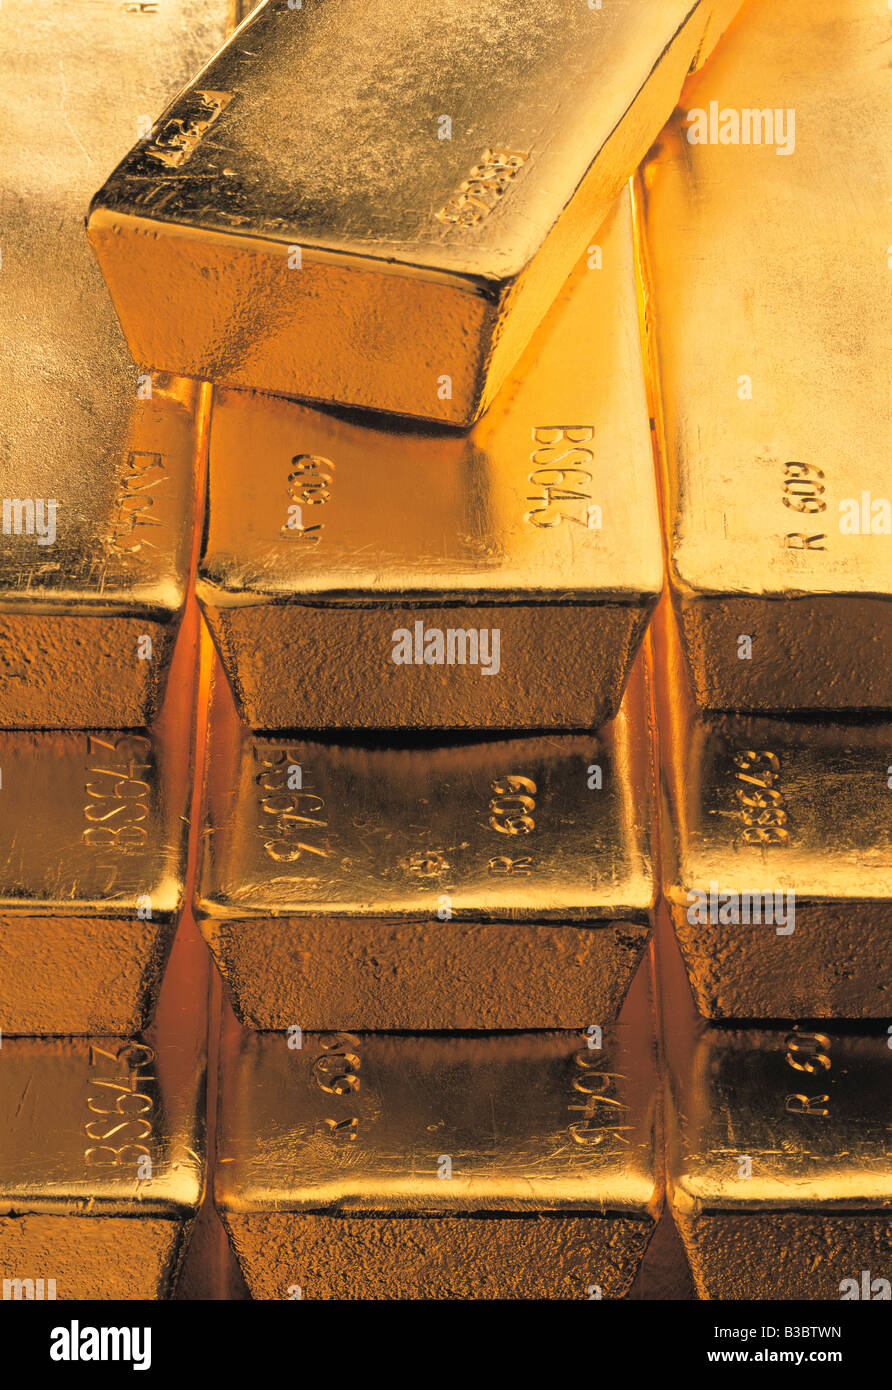 Close-up of stacked gold bars - Stock Image